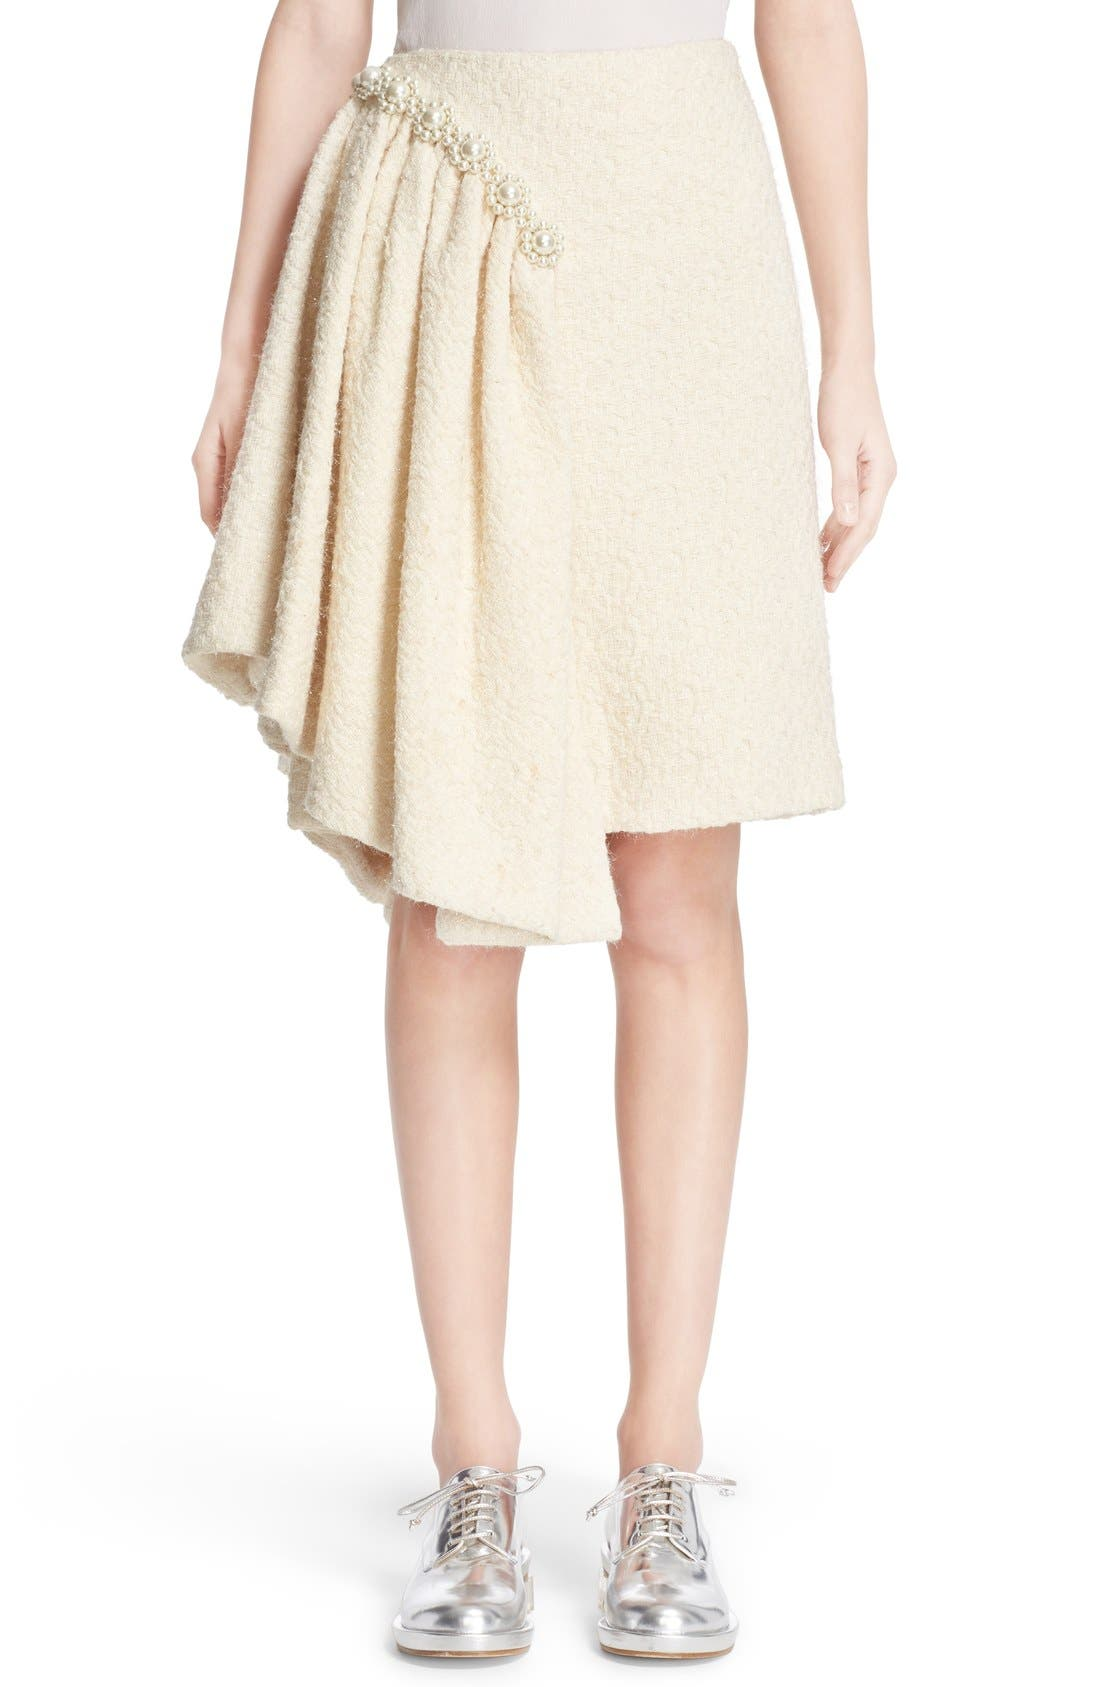 Alternate Image 1 Selected - Simone Rocha Embellished Sparkle Tweed Skirt (Nordstrom Exclusive)